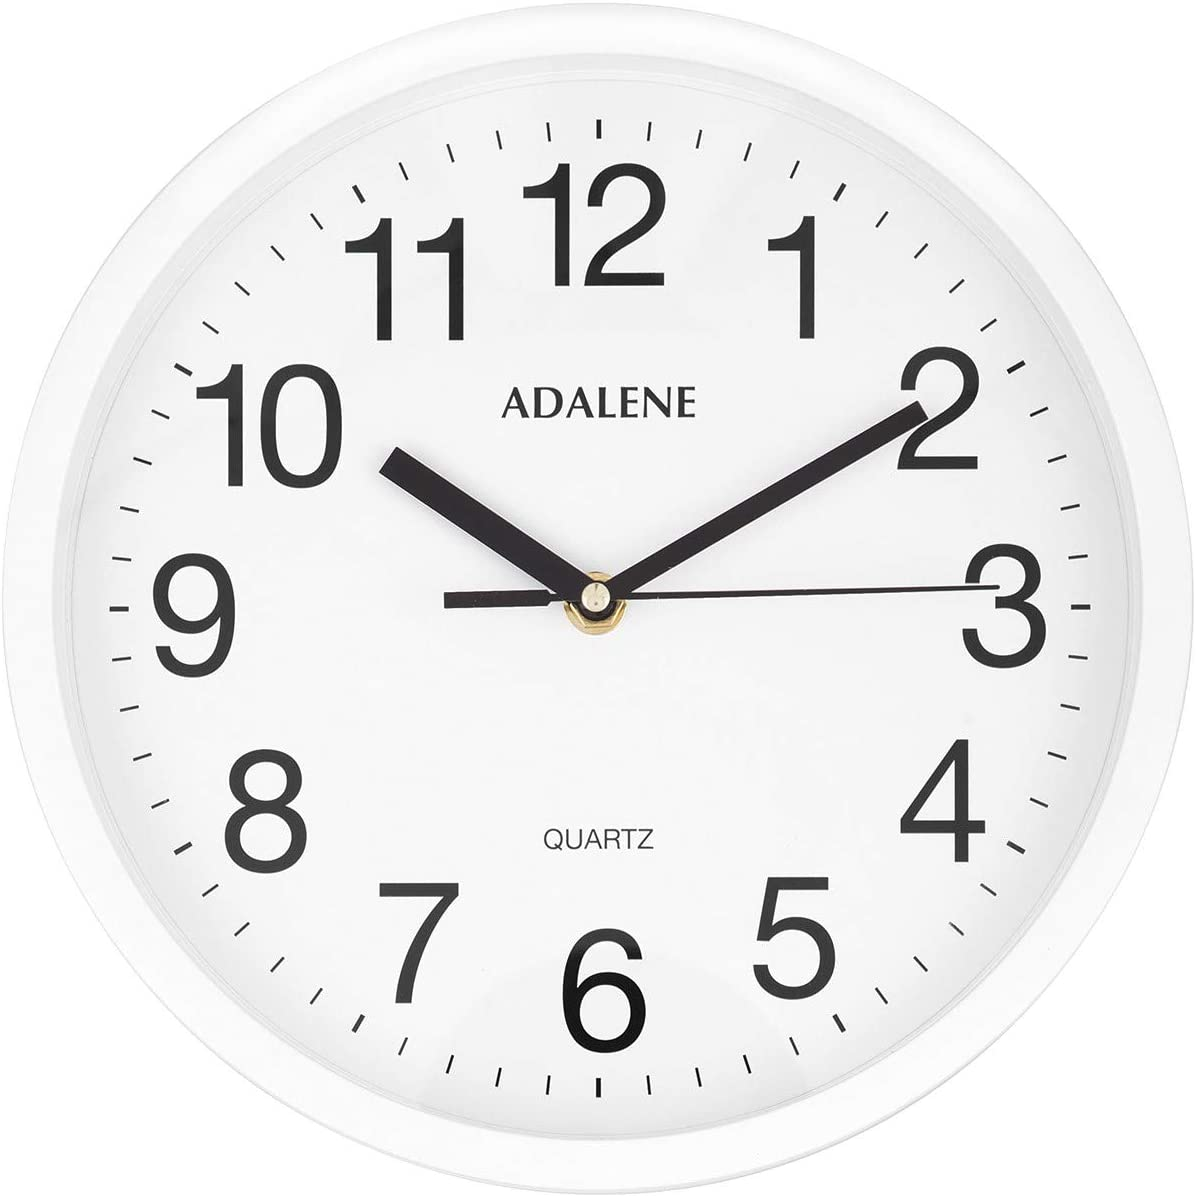 Adalene Wall Clocks Battery Operated Non Ticking - 10 Inch Completely Silent Wall Clock, Analog Quartz Office Wall Clock - Vintage White Wall Clock for School, Non Ticking Wall Clock, Classroom Clock